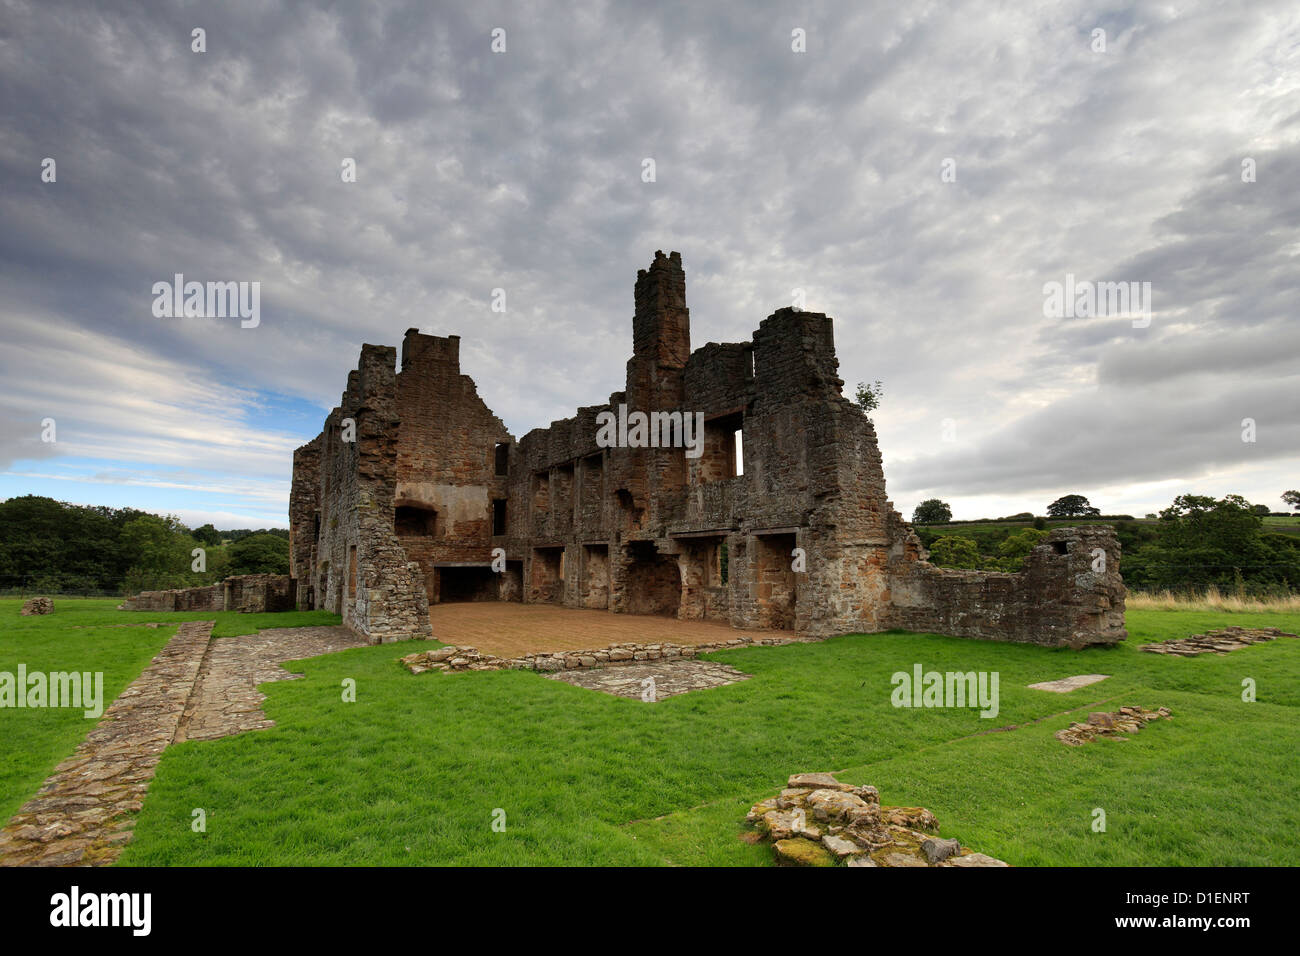 The ruins of Egglestone Abbey, near Barnard Castle Town, Teesdale, Durham County, England, Britain, UK - Stock Image